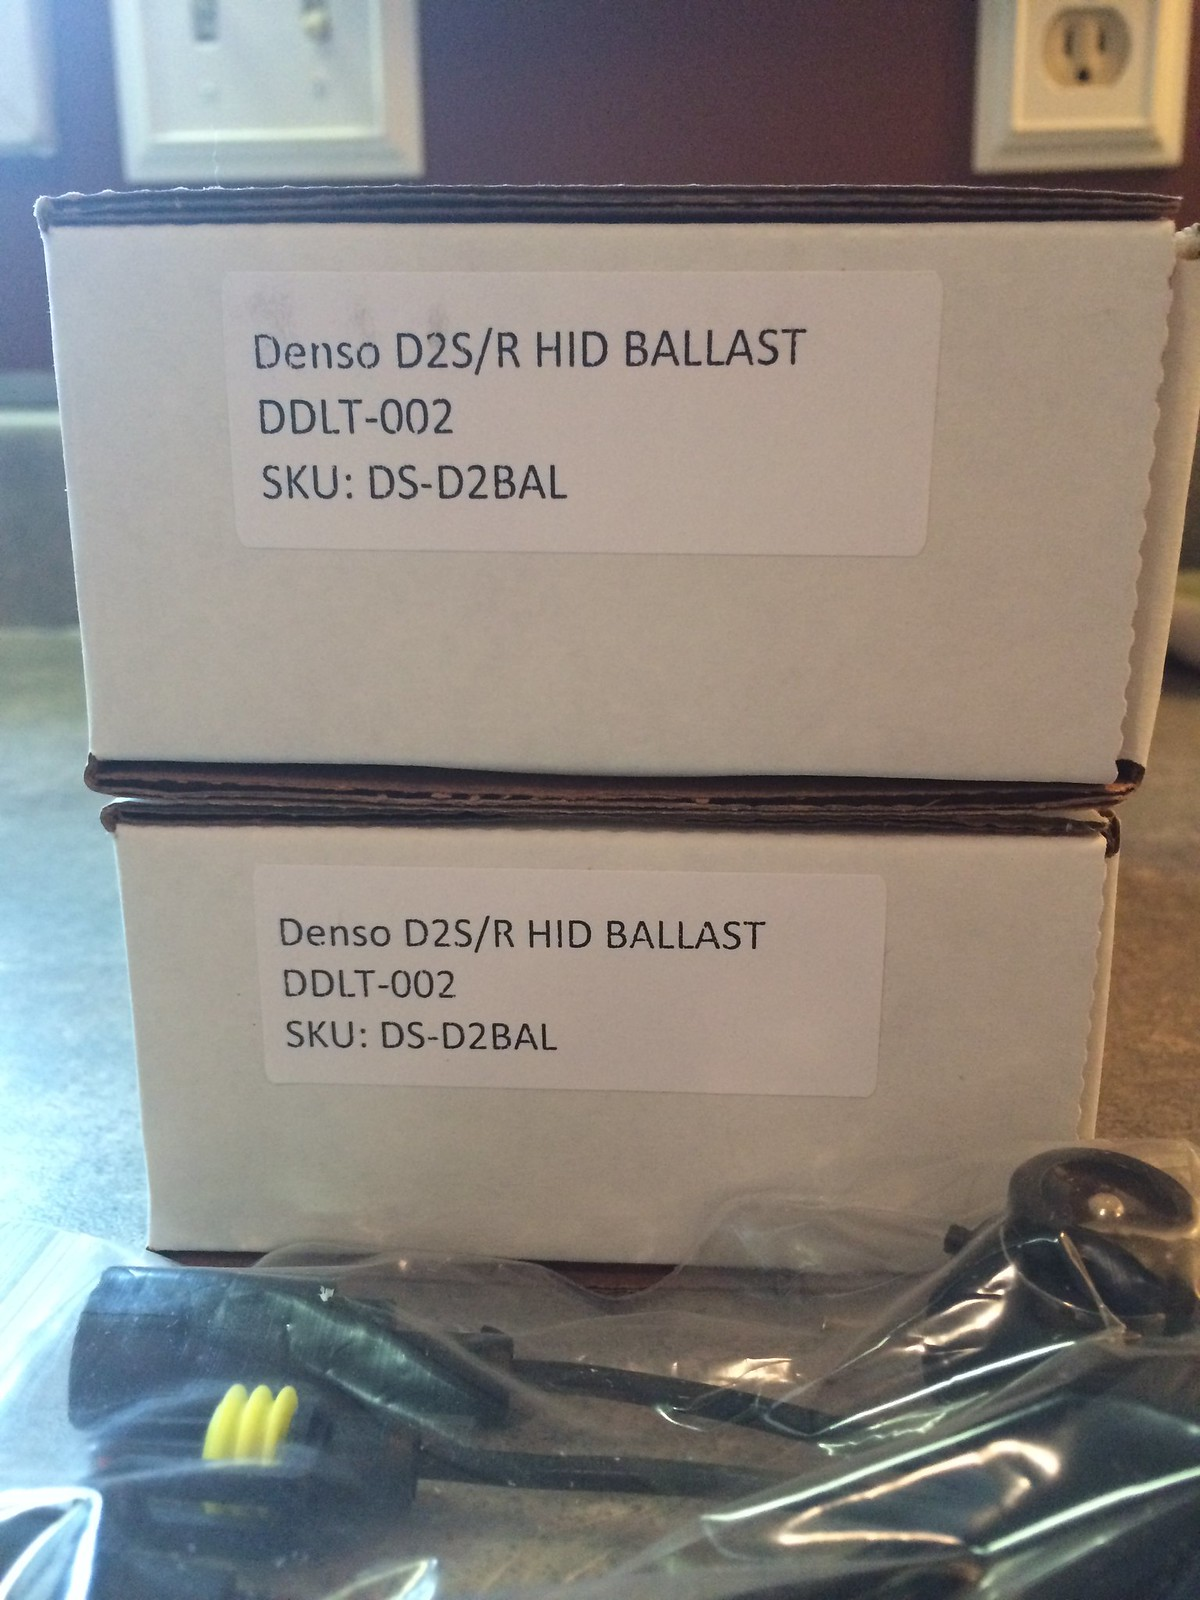 denso d2s ballast write up review toyota nation forum toyota car report this image